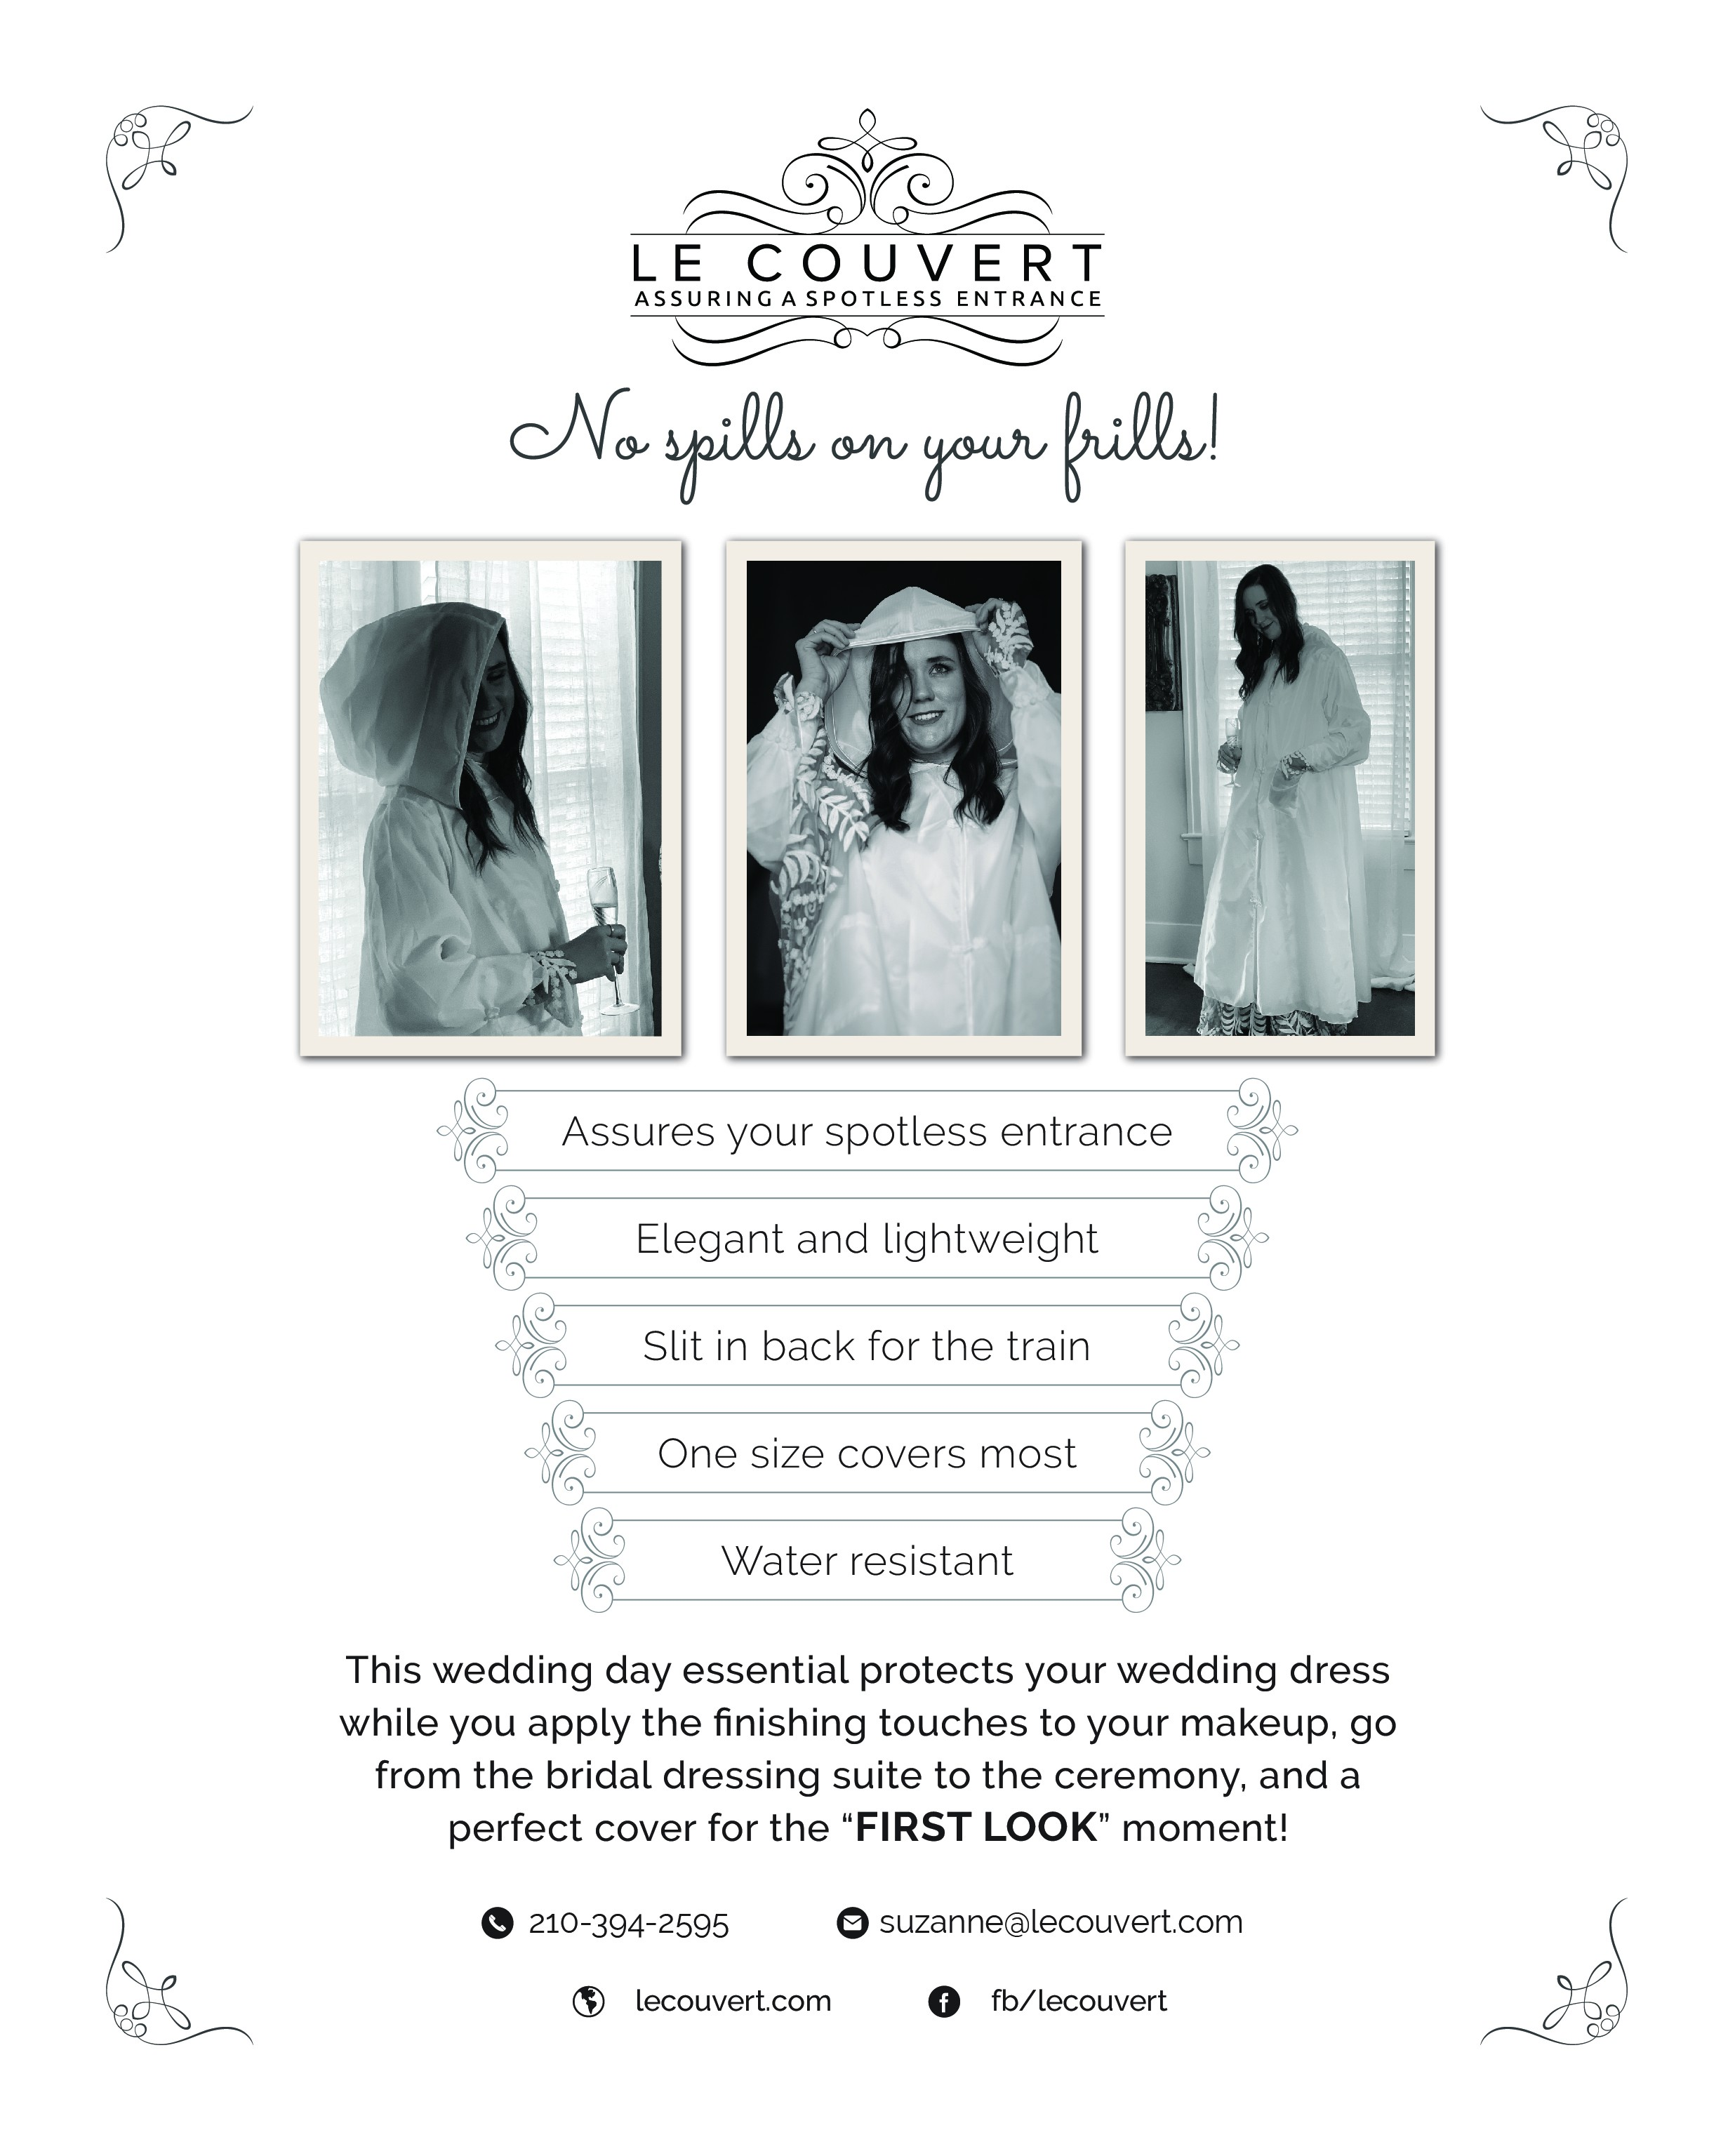 One Page Info Sheet for Le Couvert